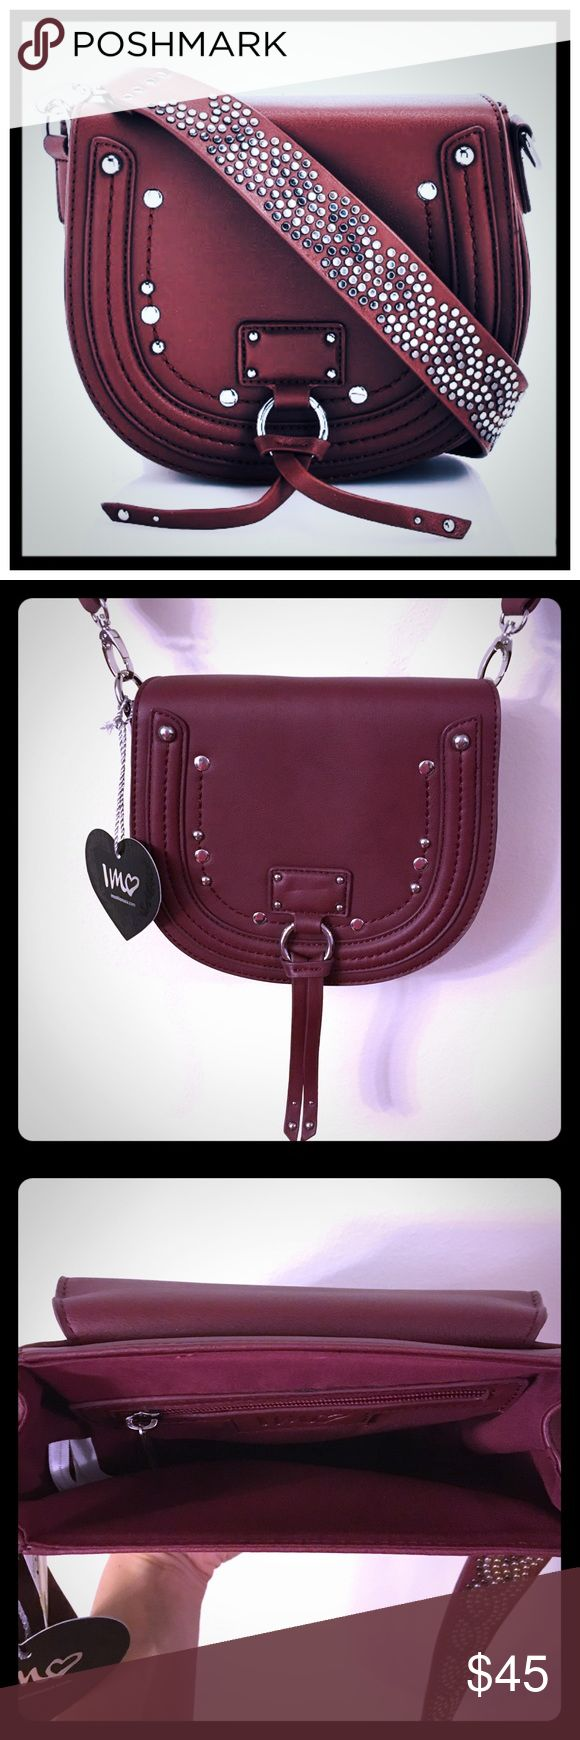 NWT Imoshion Studded Saddle Cross-body {wine} bag 📦Same day shipping (as long as P.O. is open for business). ❤ Measurements are approximate. Descriptions are accurate to the best of my knowledge.  Western meets downtown chic in this gorgeous wine-colored cross-body saddlebag. This structured bag features a flap with magnetic closure, Metal studs & tassel detail. A wide shoulder strap with intricate multicolored stud pattern. Ample main compartment with interior zipper pocket to secure…